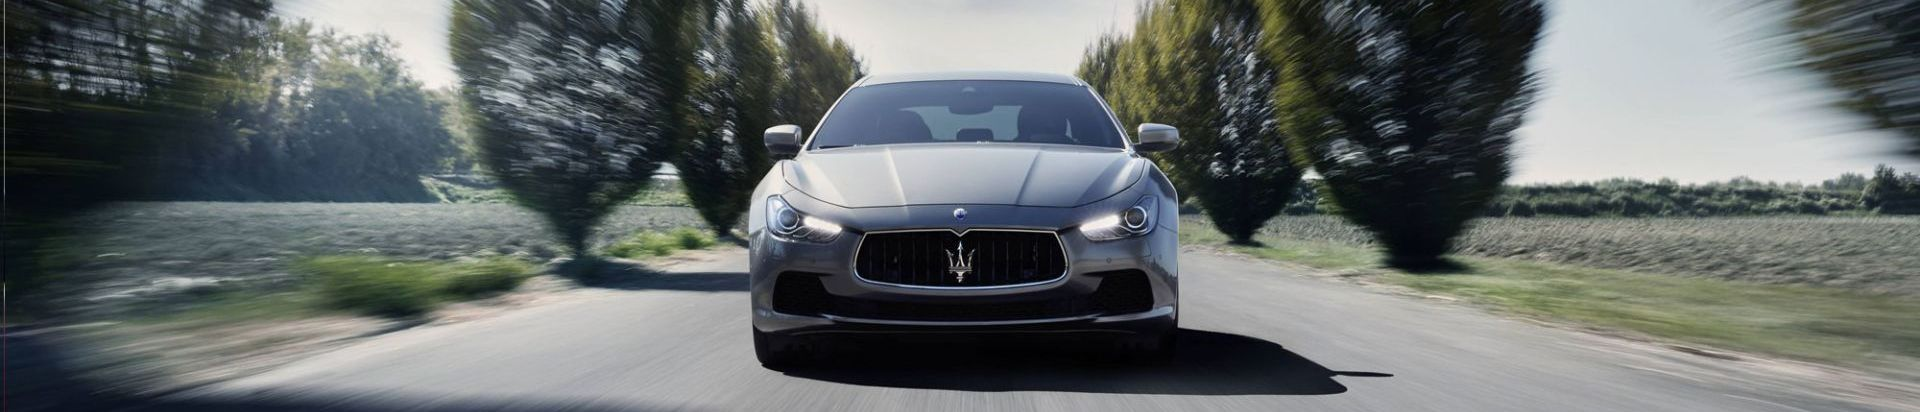 2017 Maserati Ghibli For Sale Near Plano Tx Maserati Of Austin